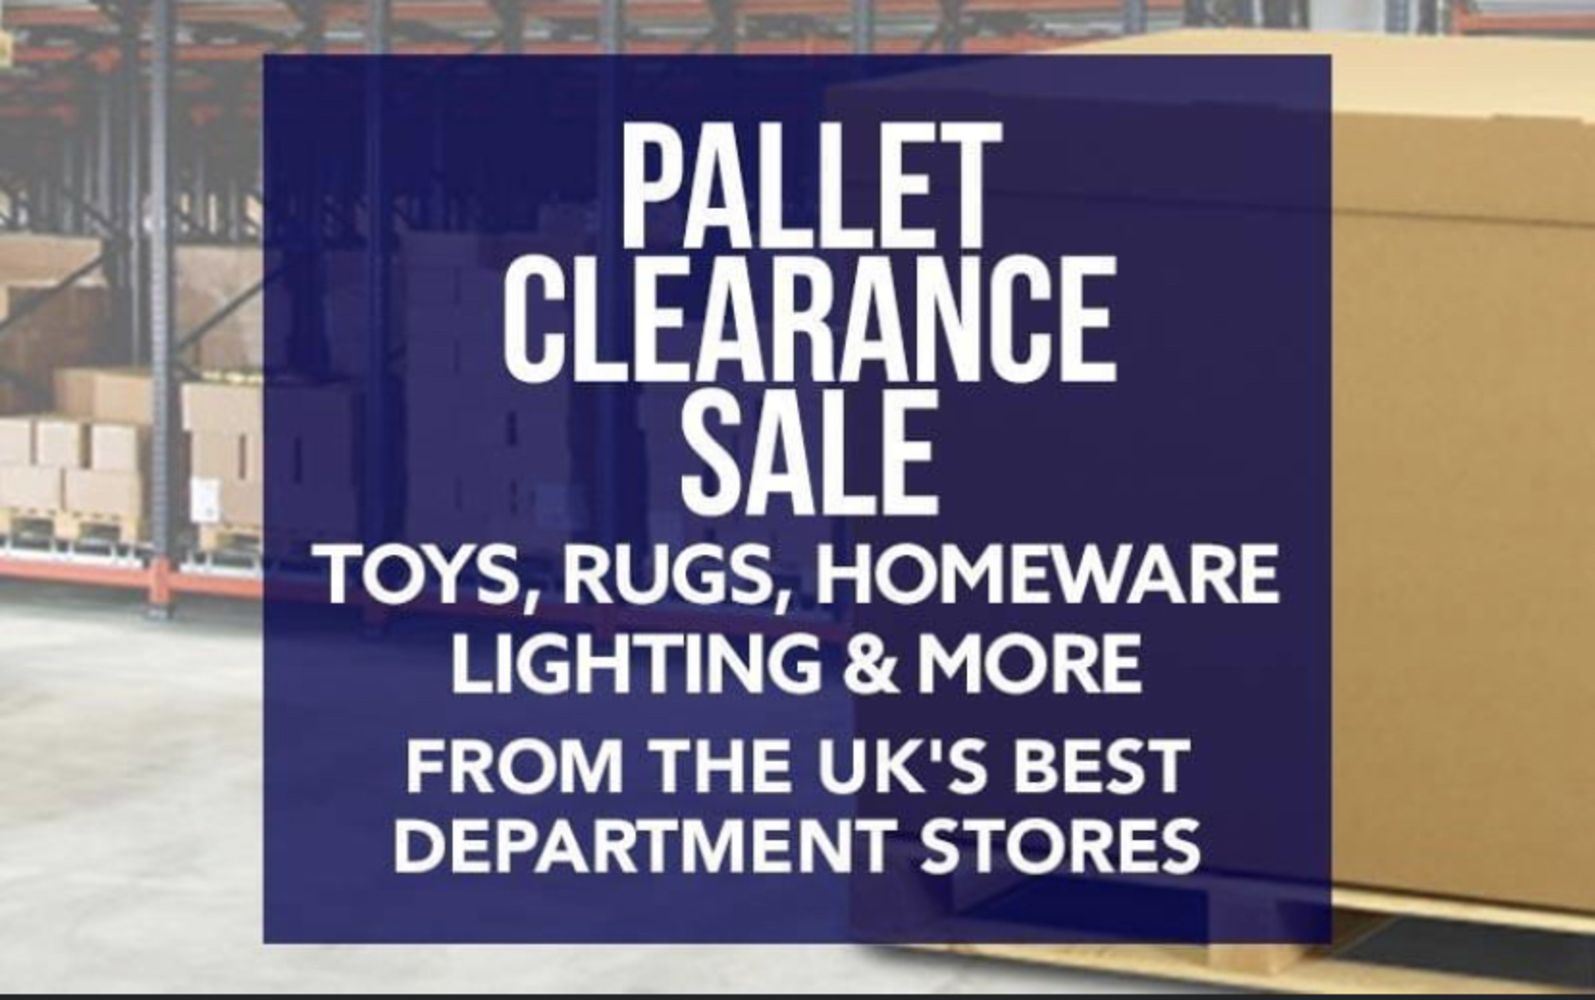 No Reserve - Pallet Clearance Sale! 8th March 2021